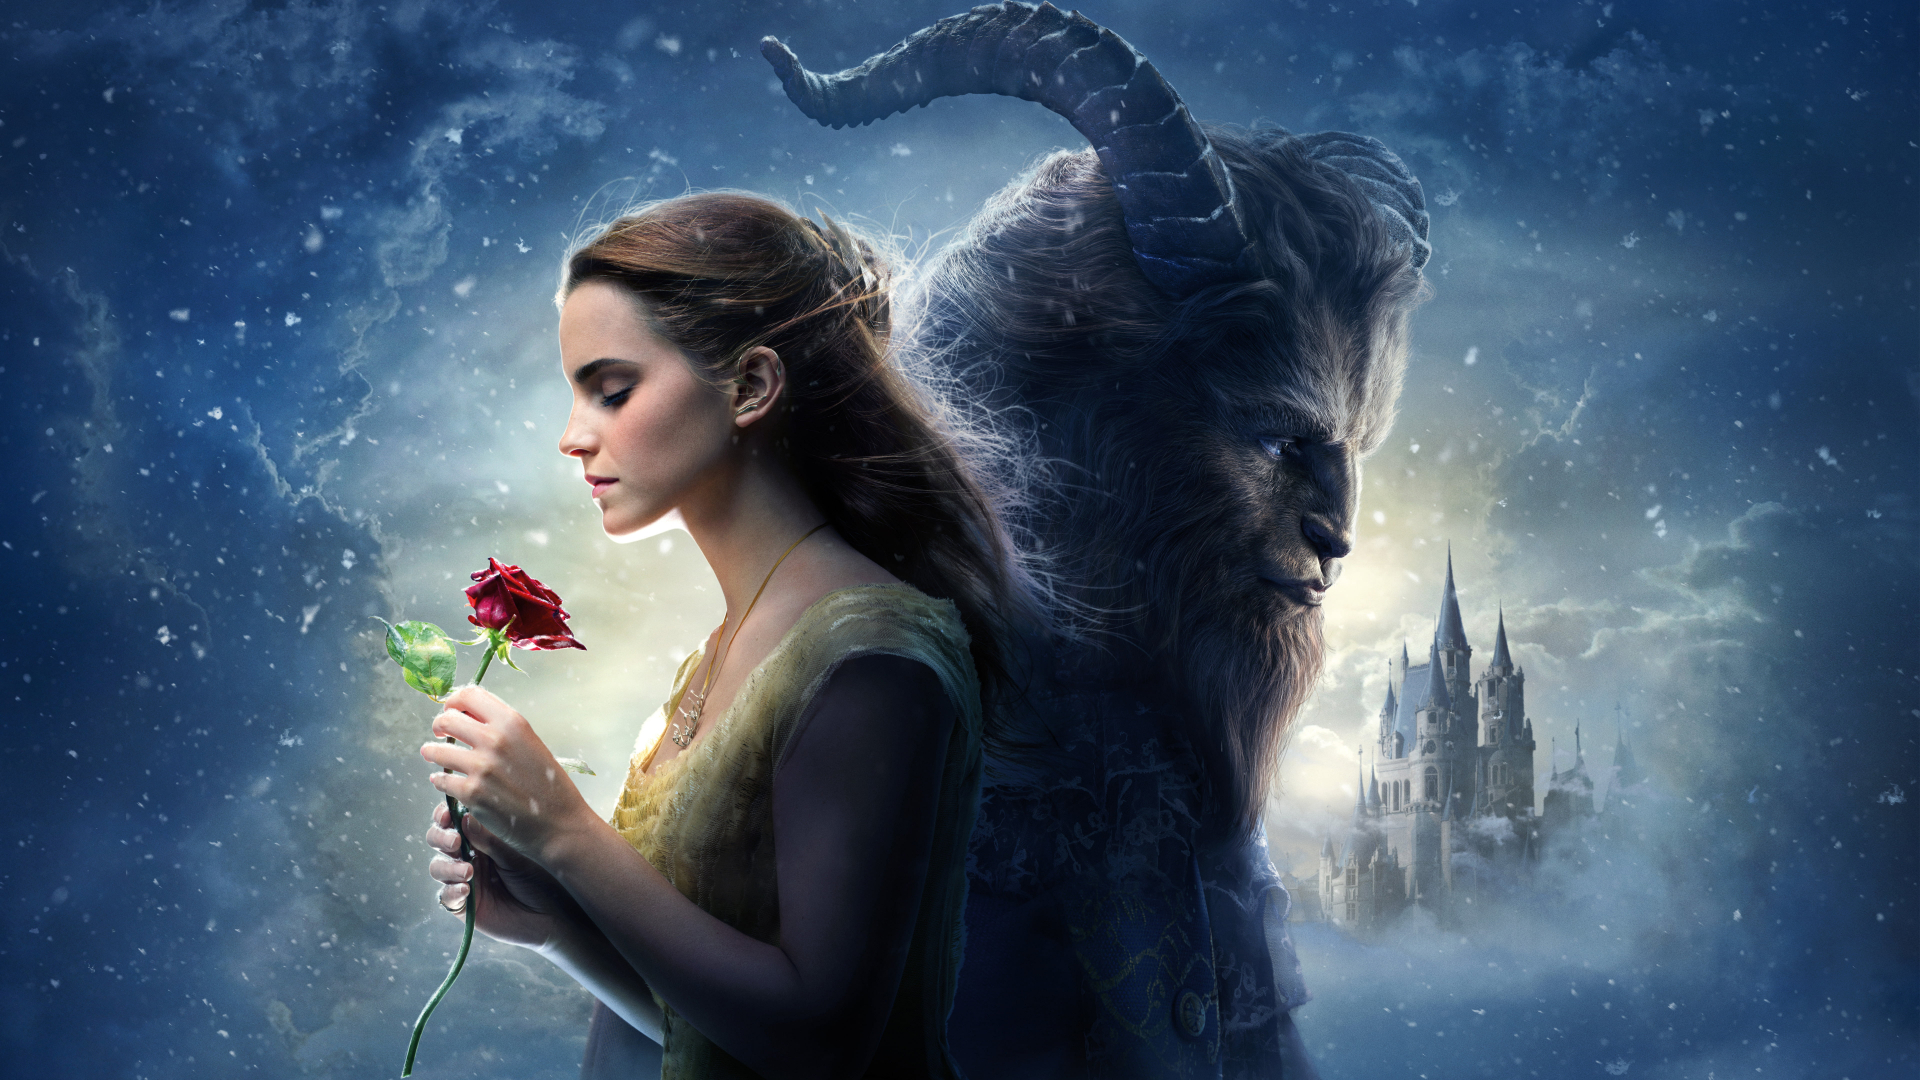 Free Download Beauty And The Beast Wallpaper Hd Wallpaper